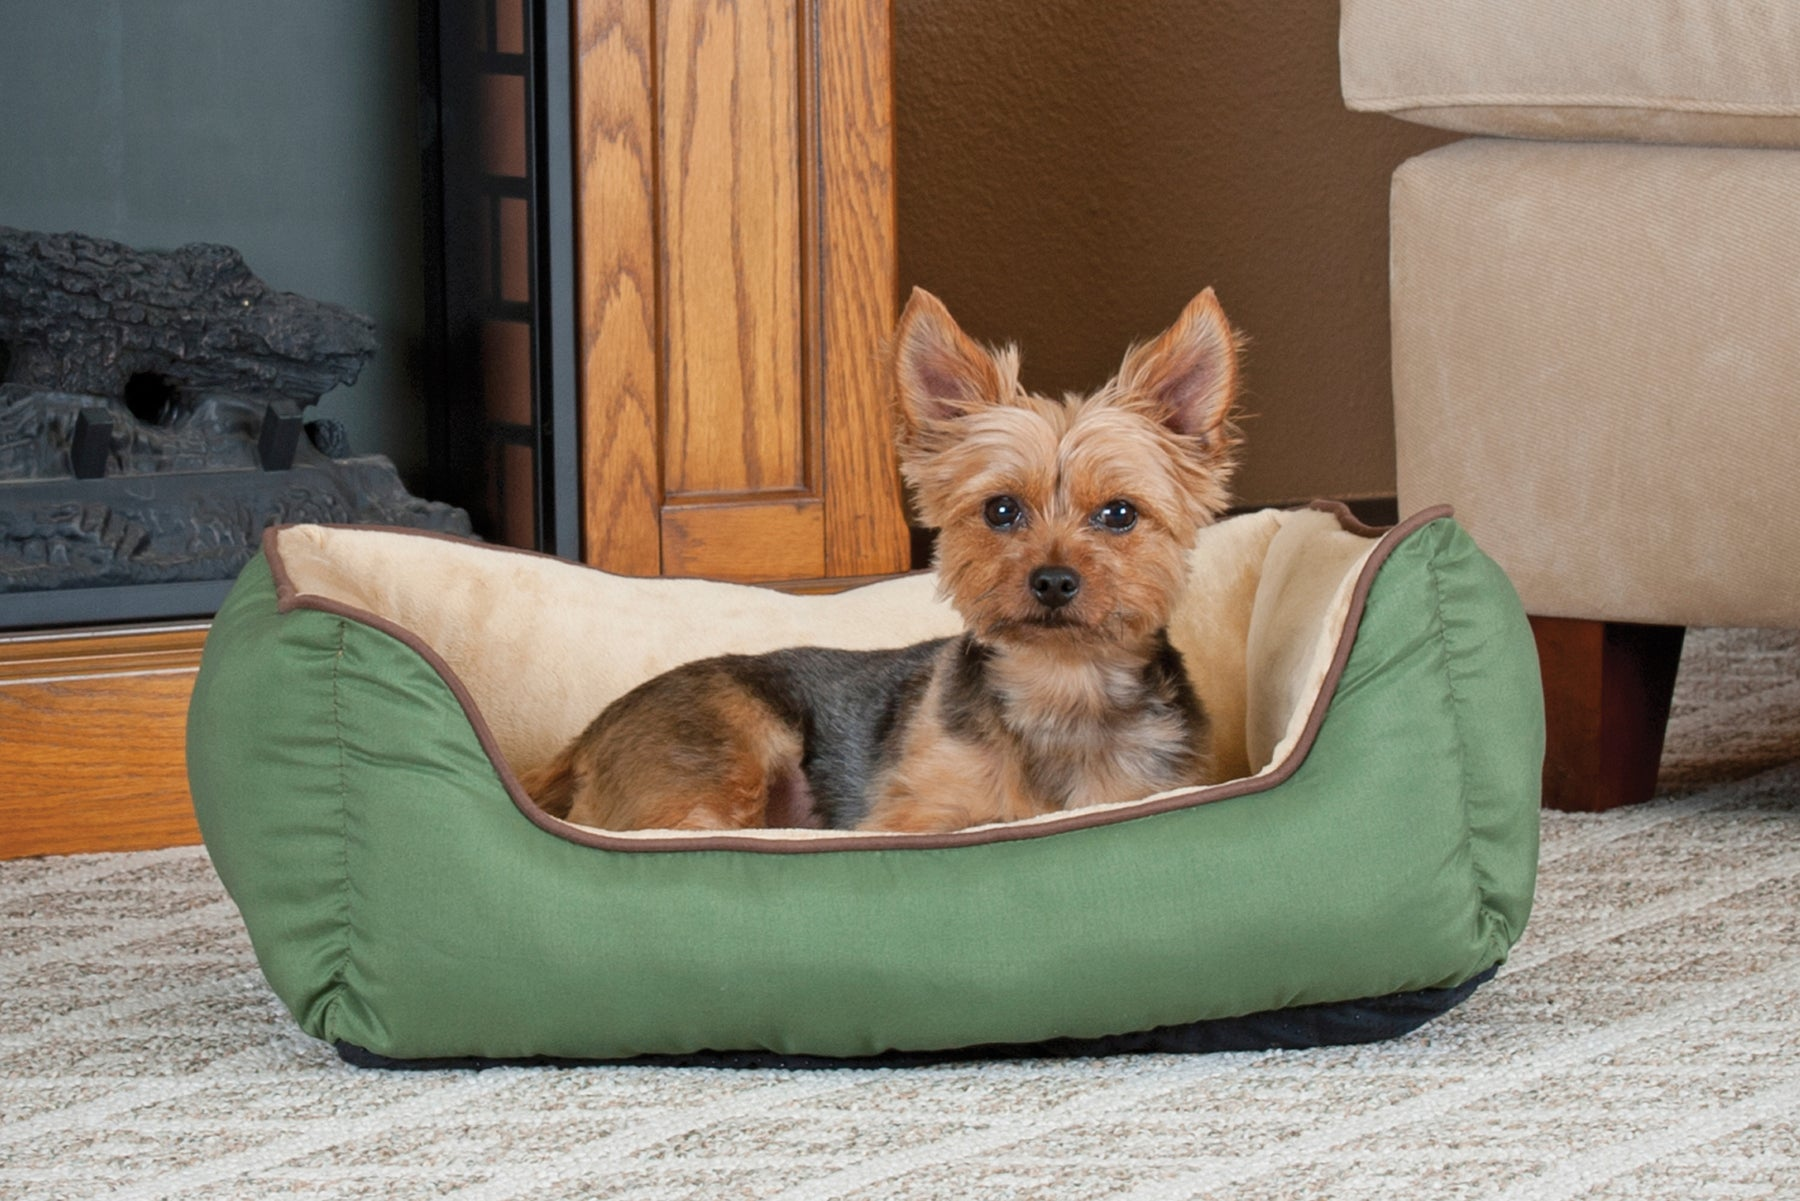 Dogs usually scratch their beds out of instinct.